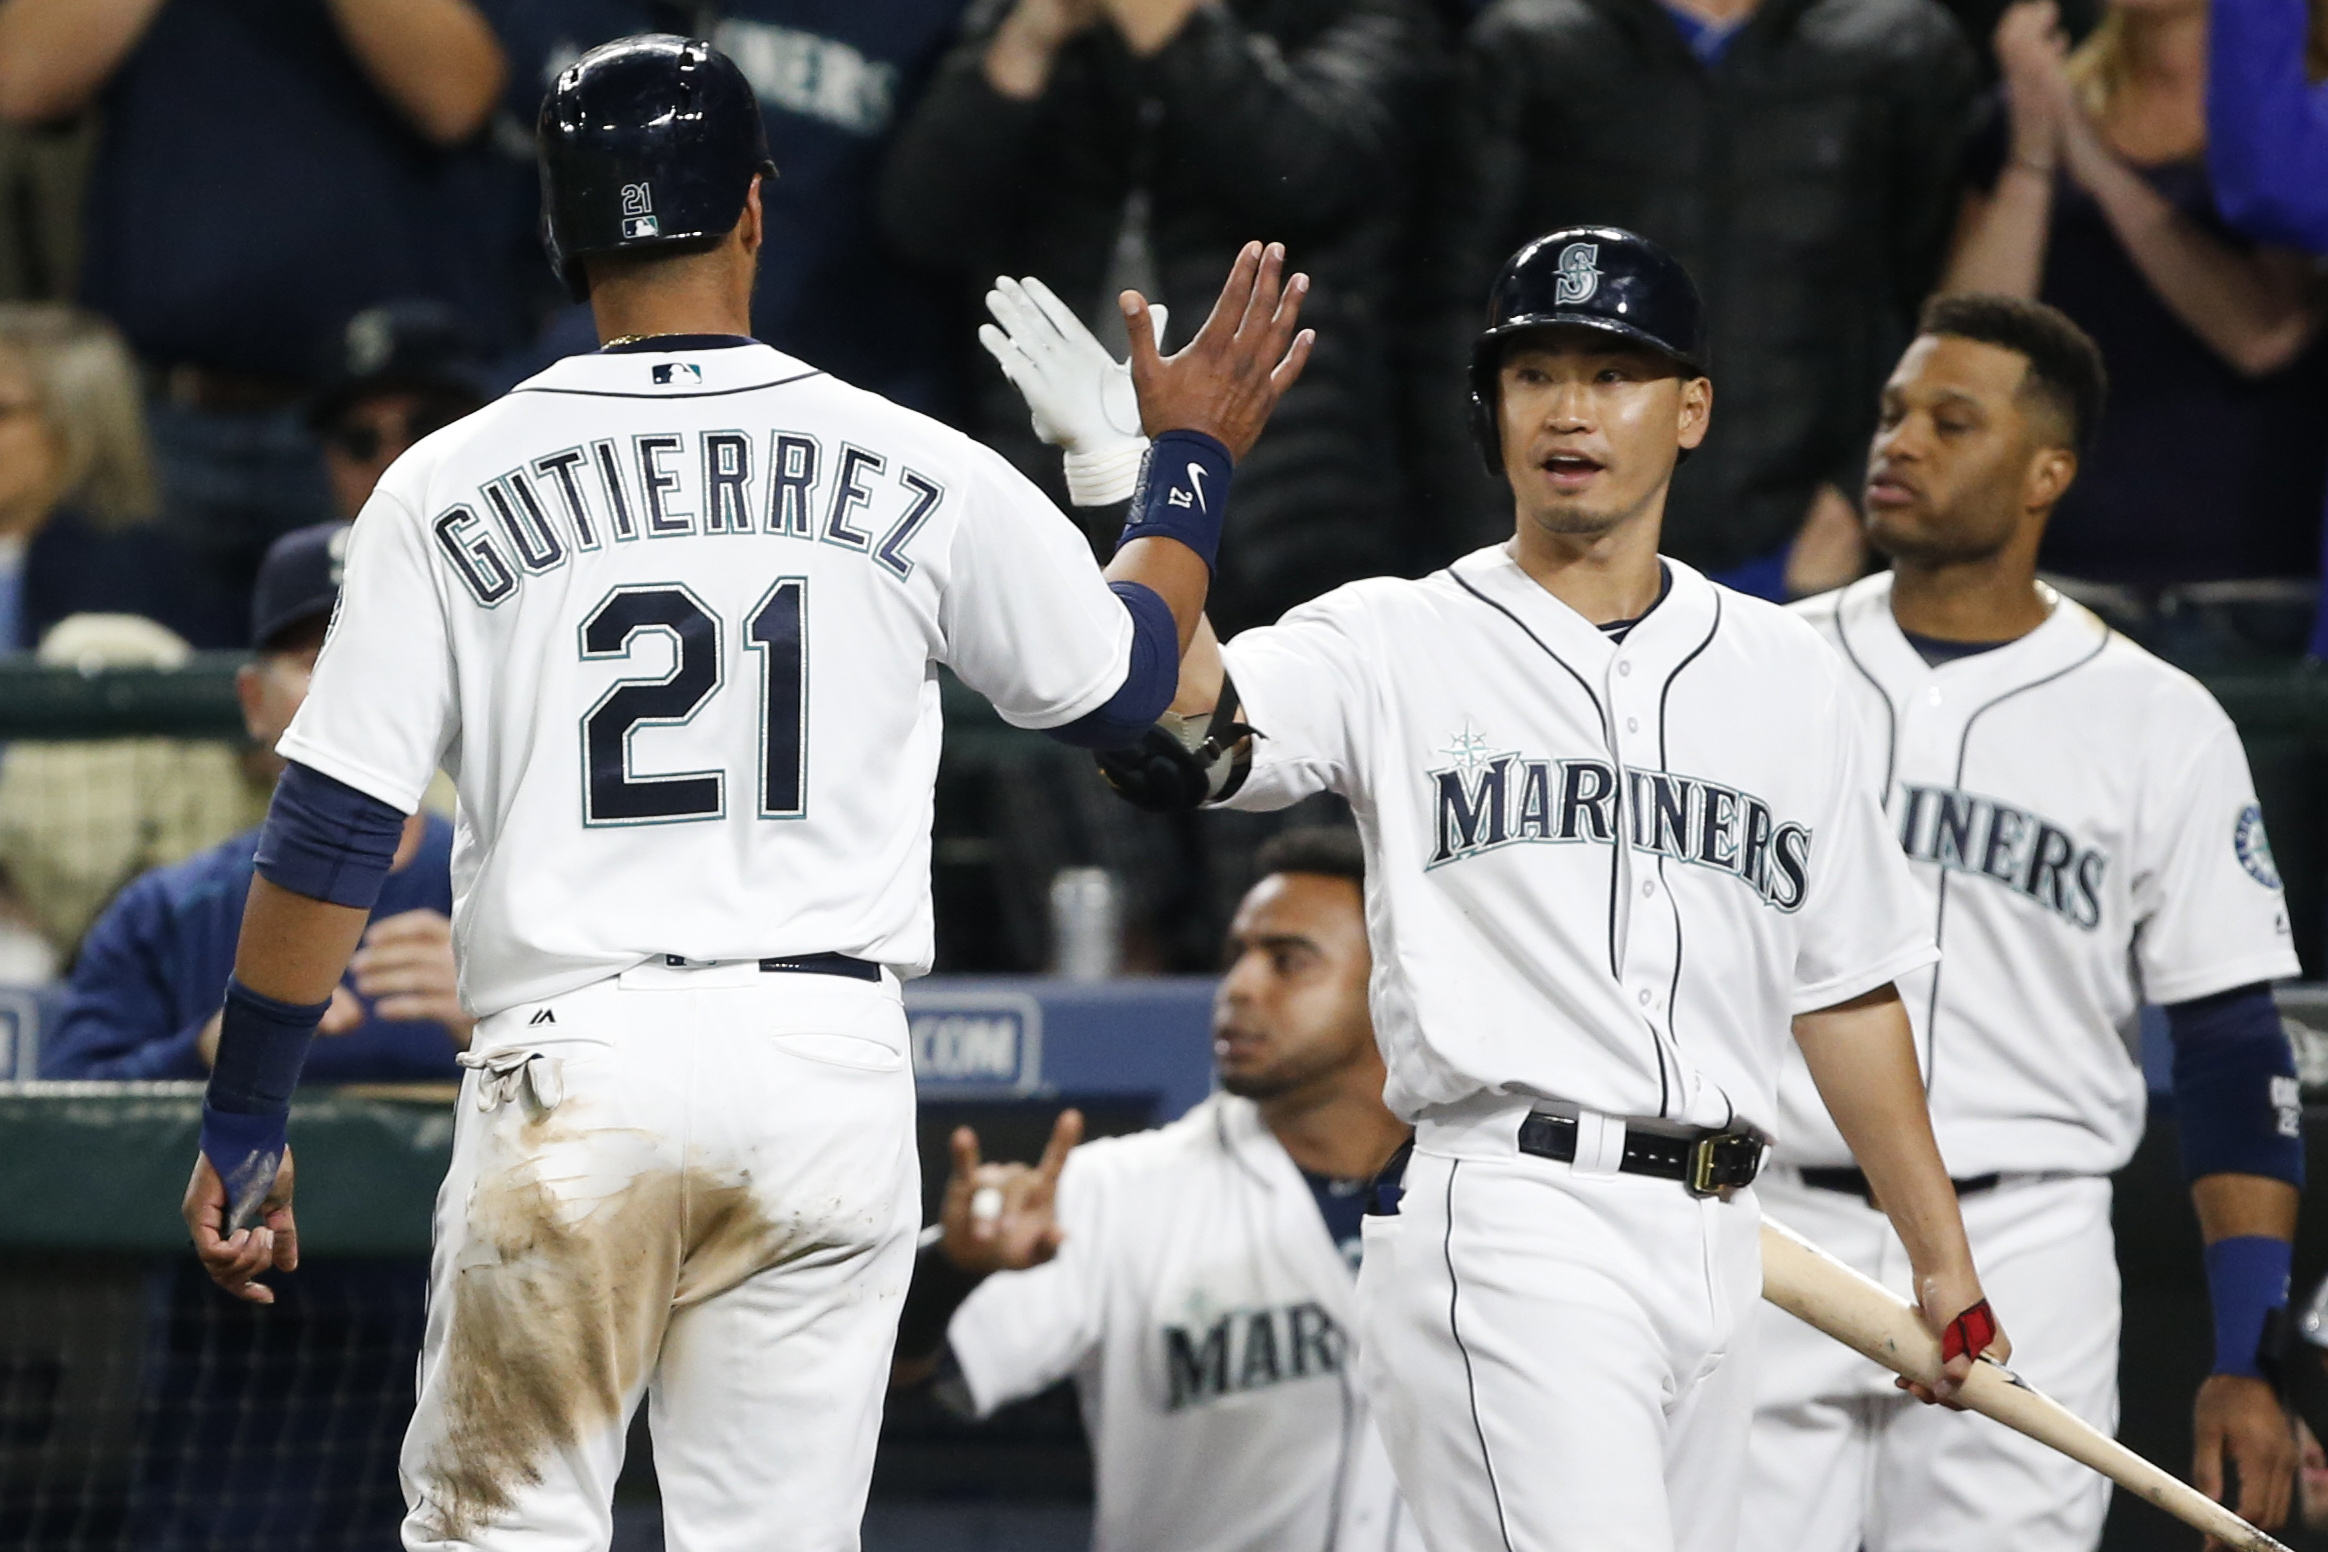 Mariners' buzz growing at gate, on TV